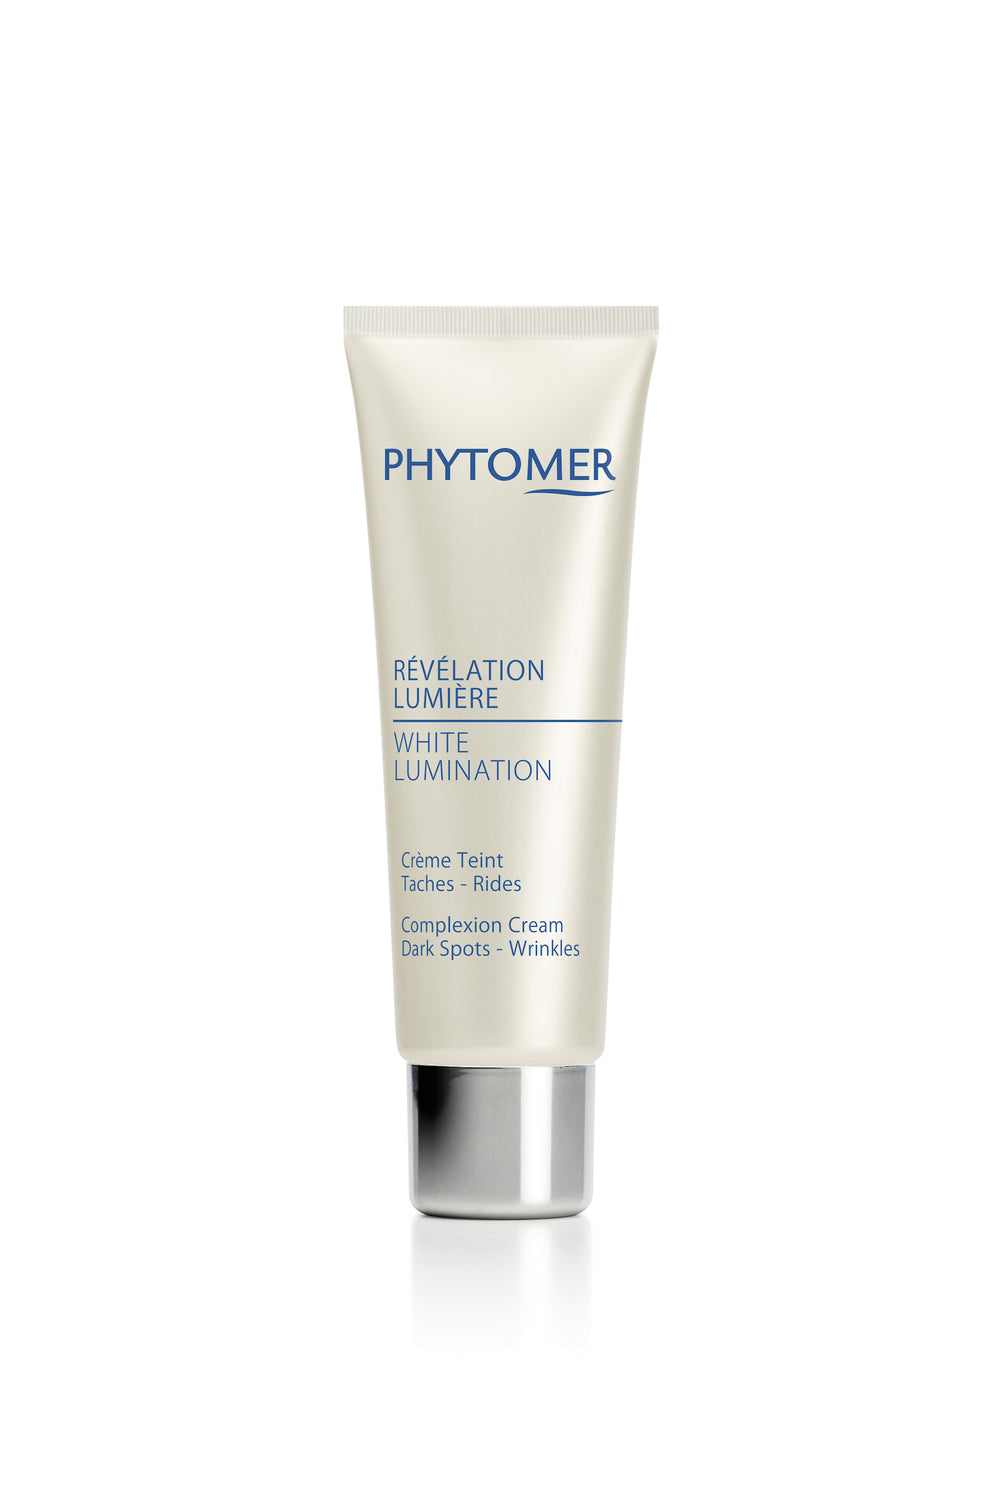 White Lumination Complexion Cream for Dark Spots & Wrinkles - 30ml